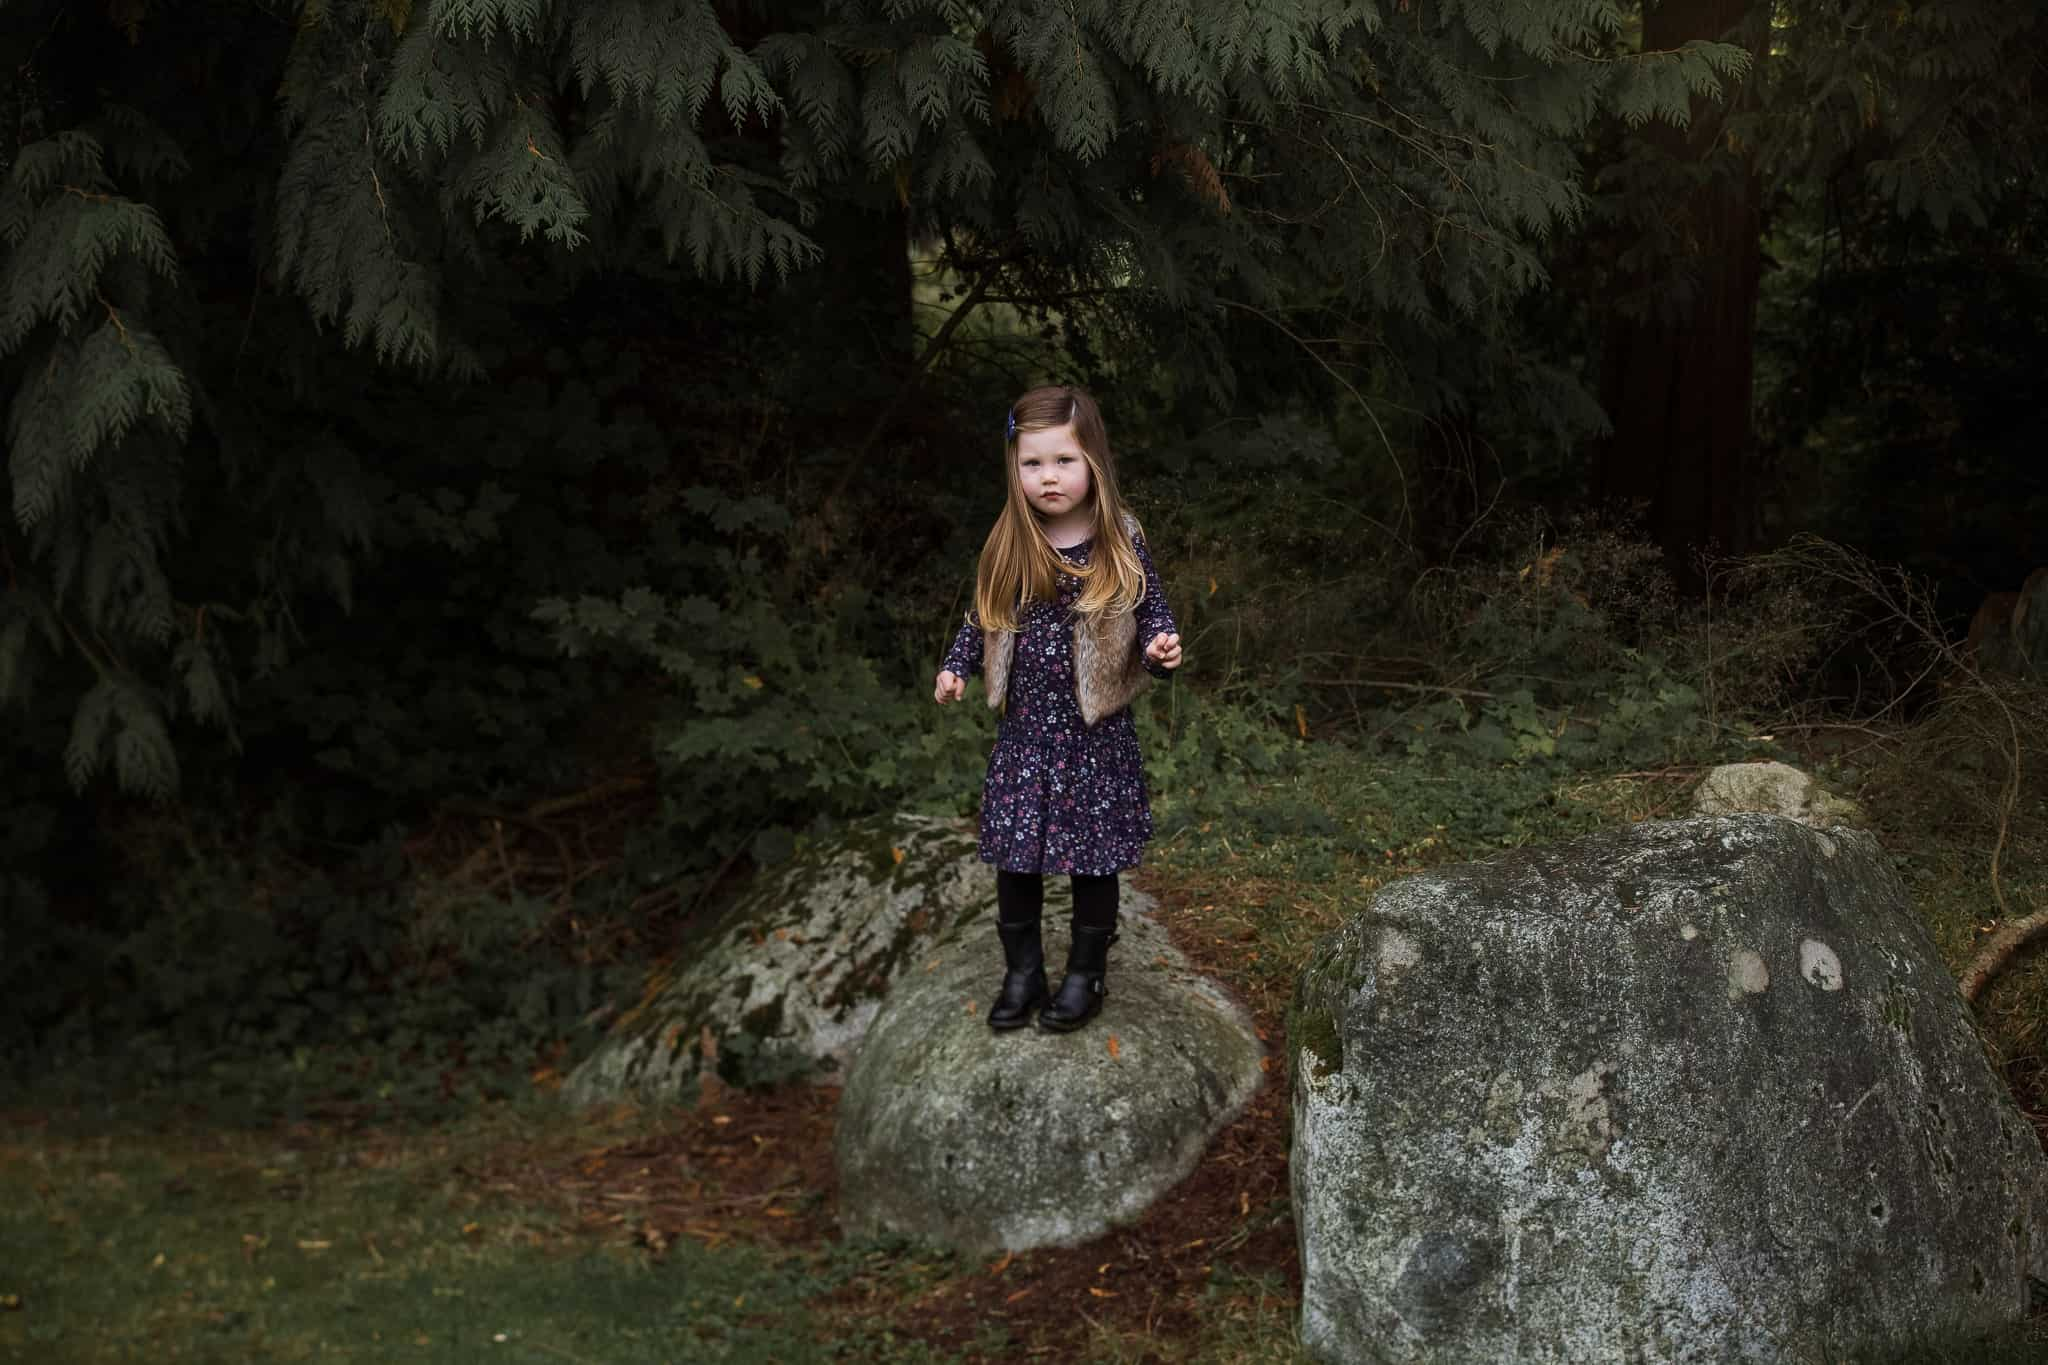 little girl standing on rocks in a forest